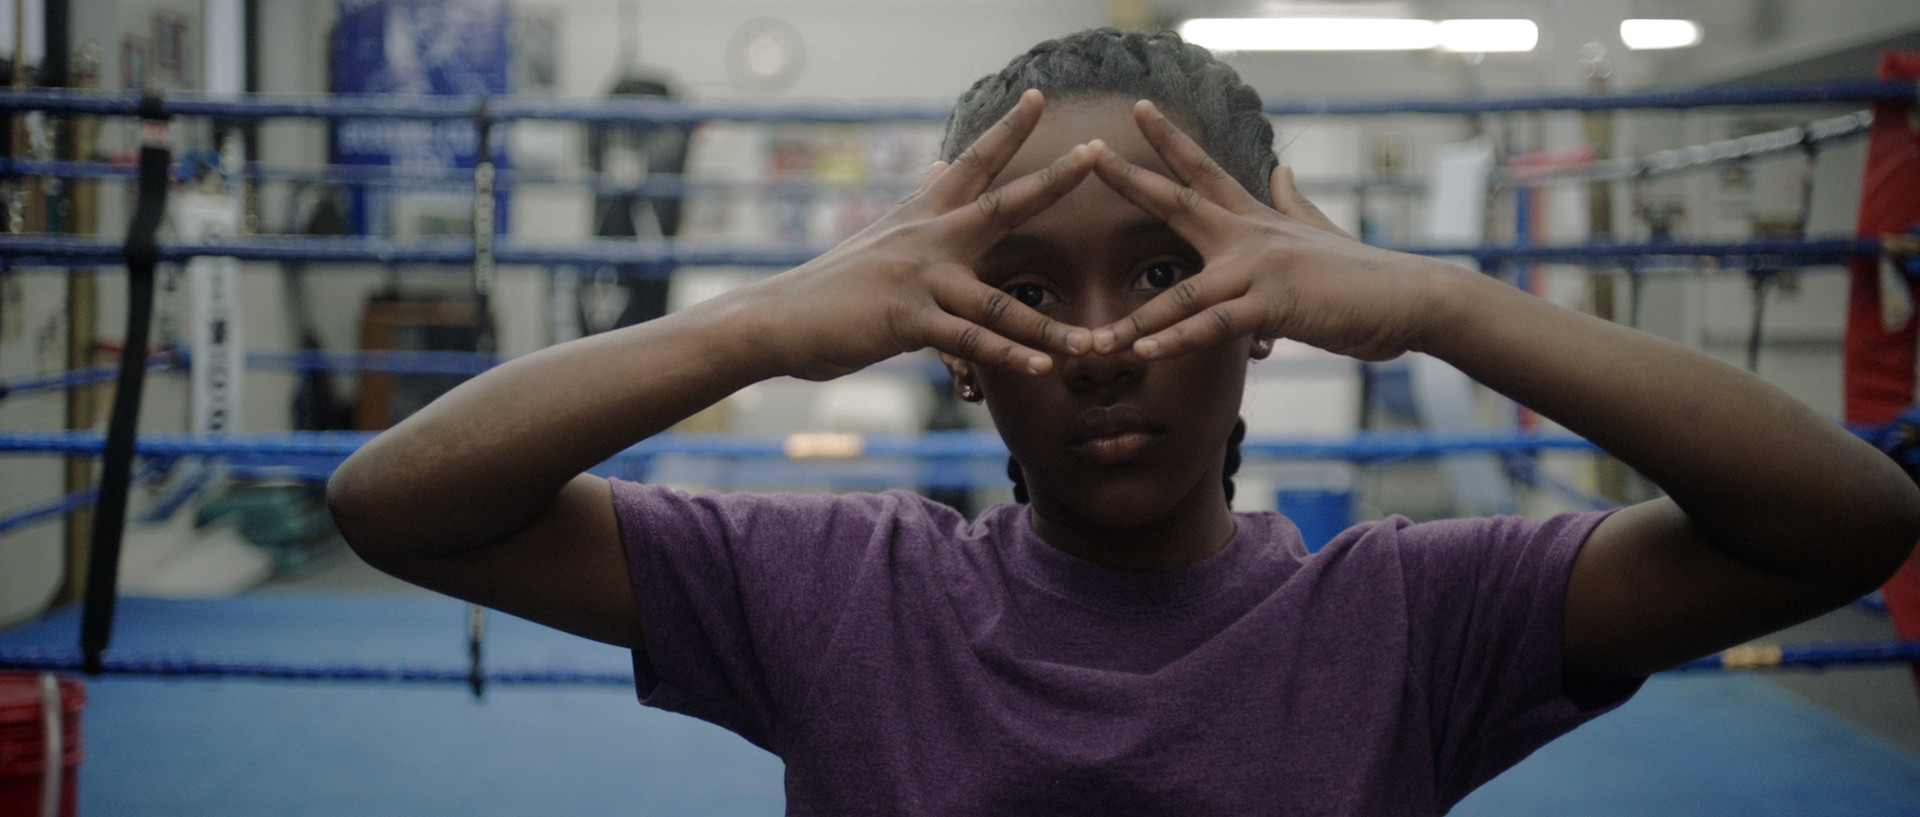 Image result for The Fits film